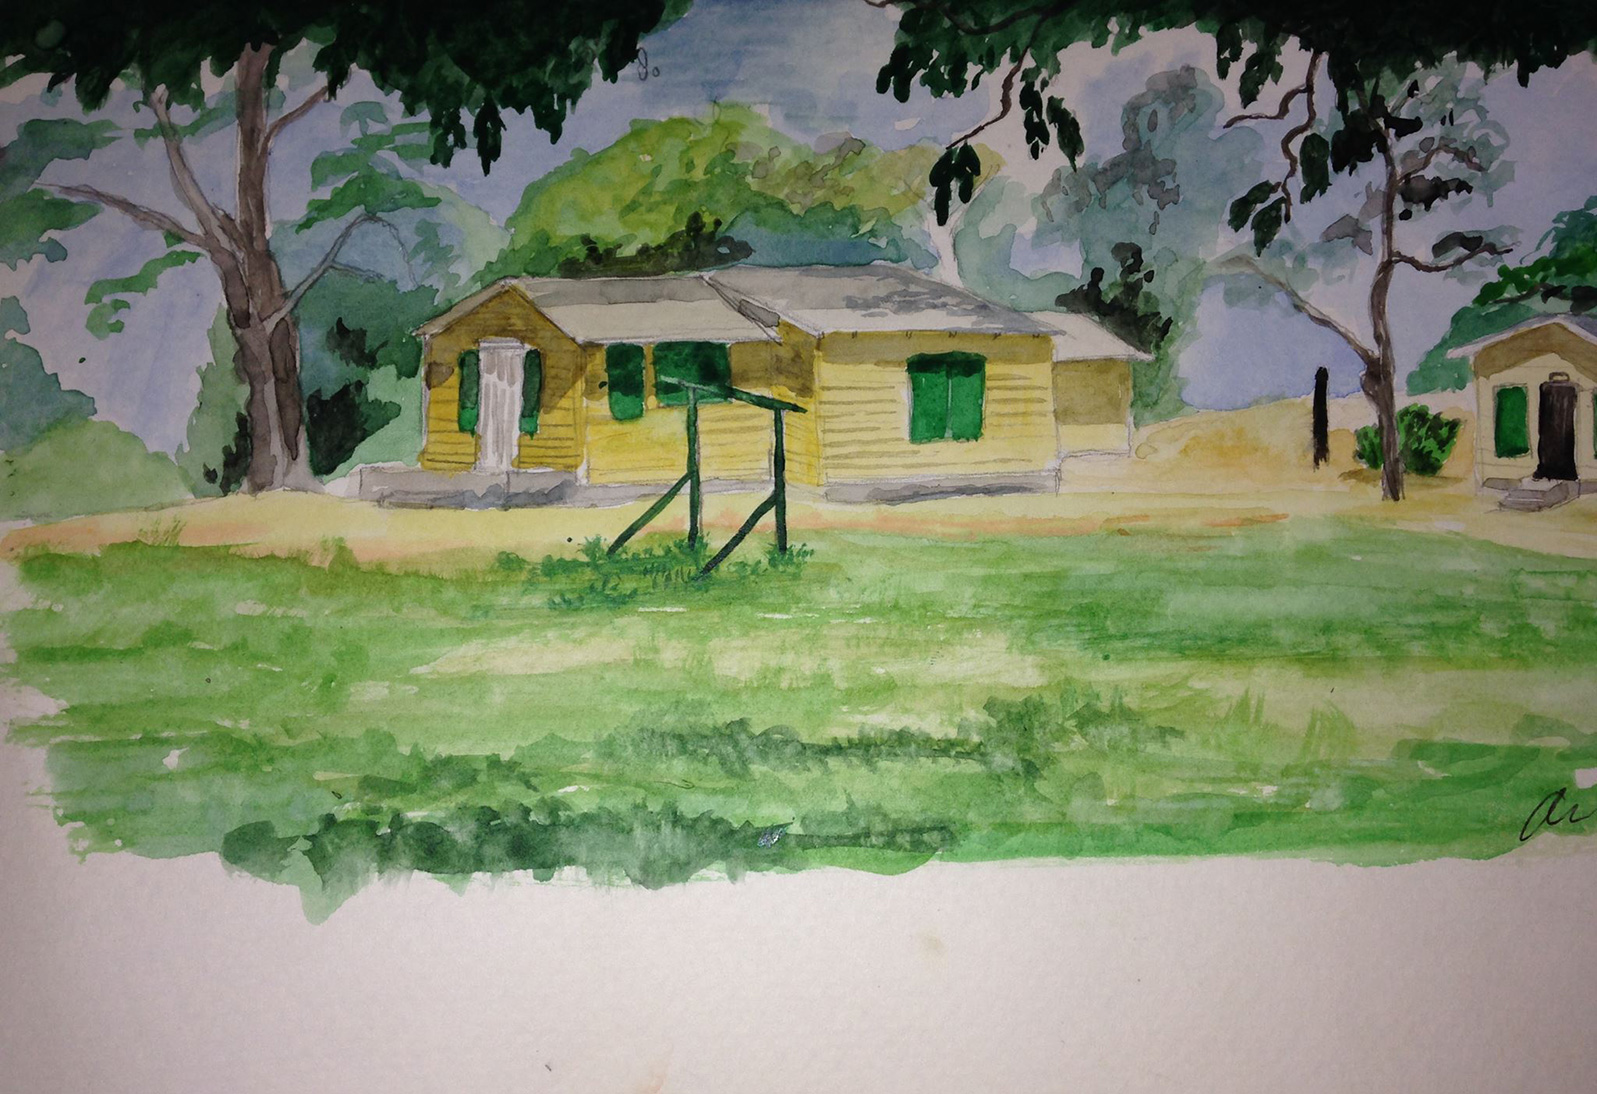 Watercolor painting of a house